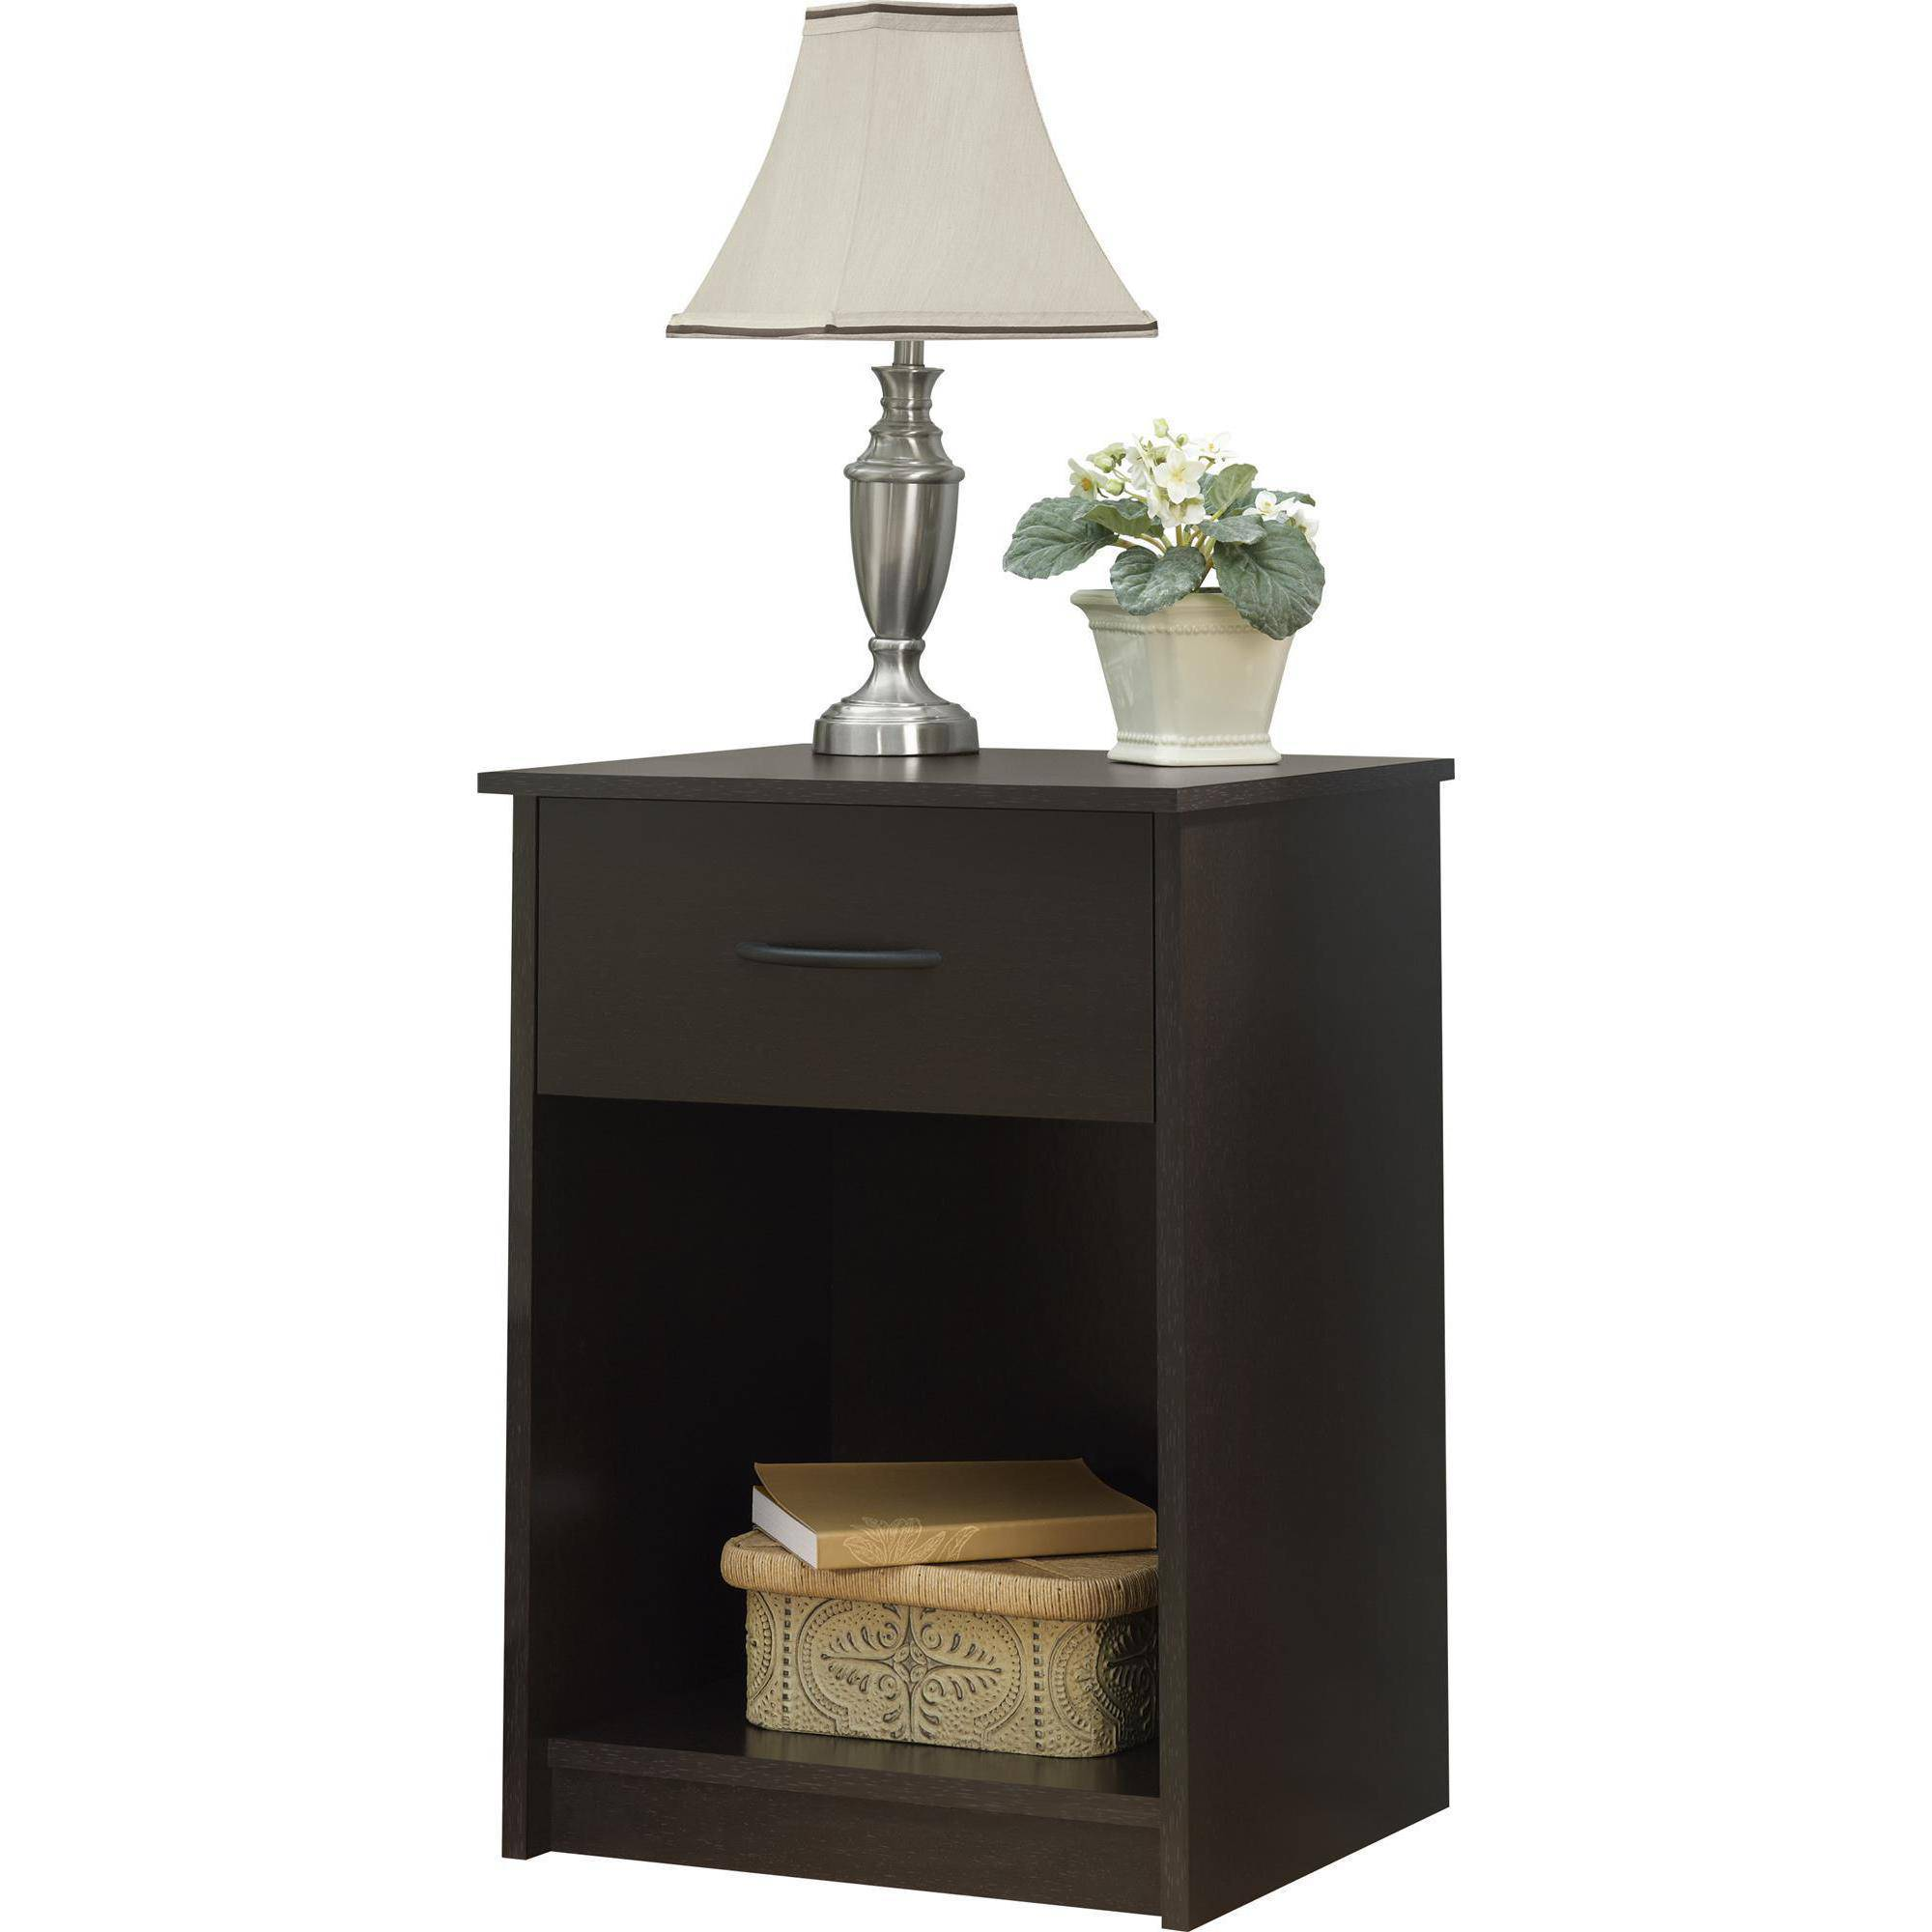 Mainstays Nightstand / End Table, Espresso - Walmart.com